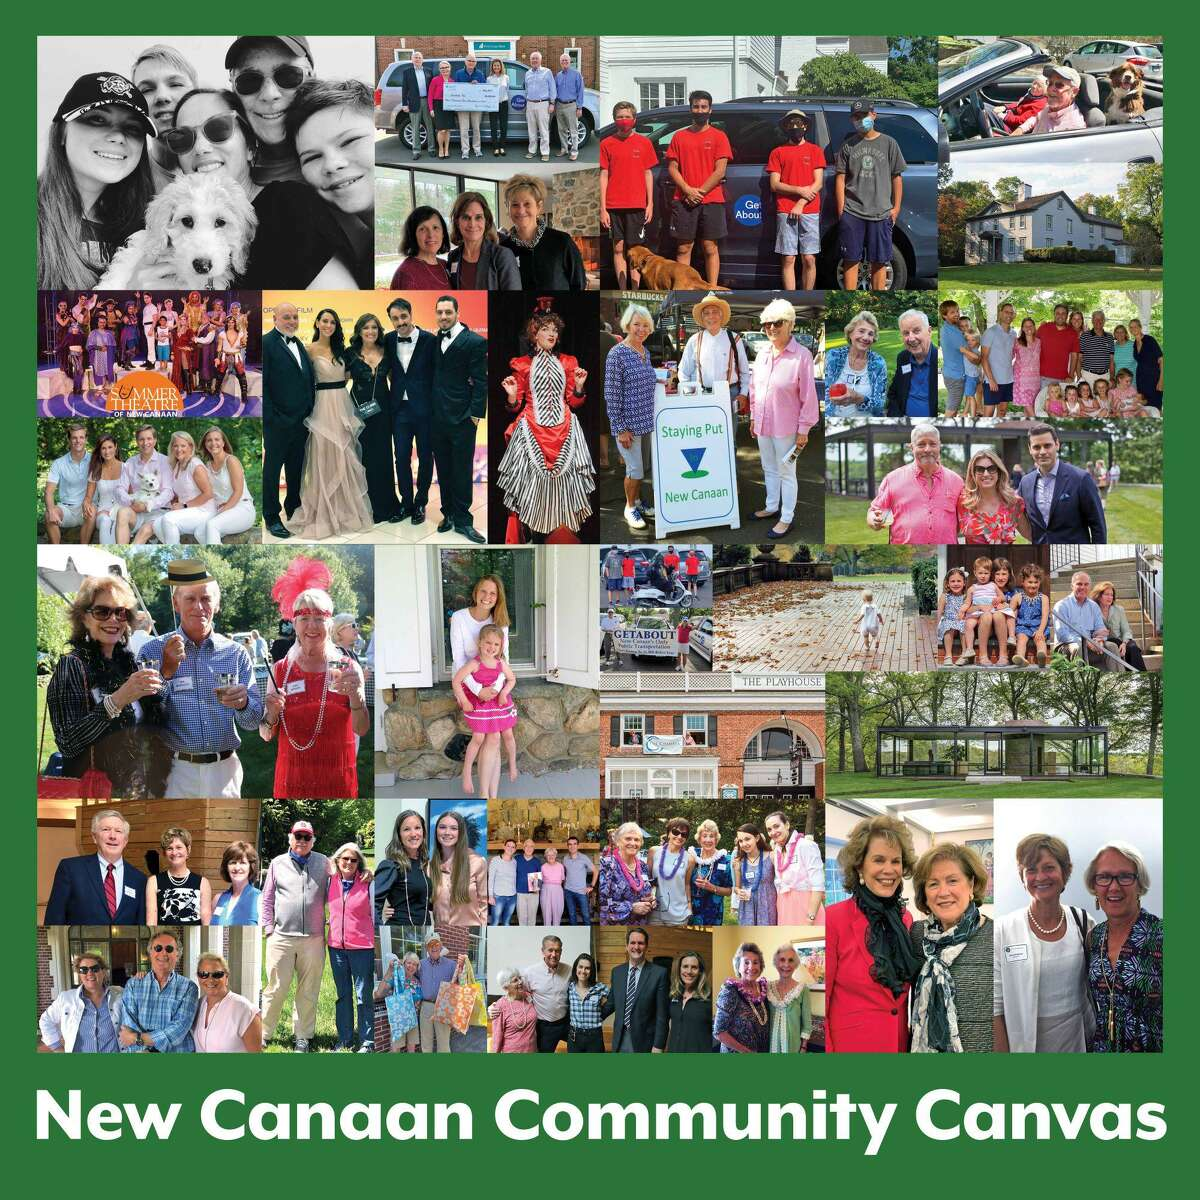 The New Canaan Museum & Historical Society will unveil its Community Canvas on the great lawn of its campus at 13 Oenoke Ridge Road Saturday, Oct. 3, withan outside reception from 3:30-5 p.m.